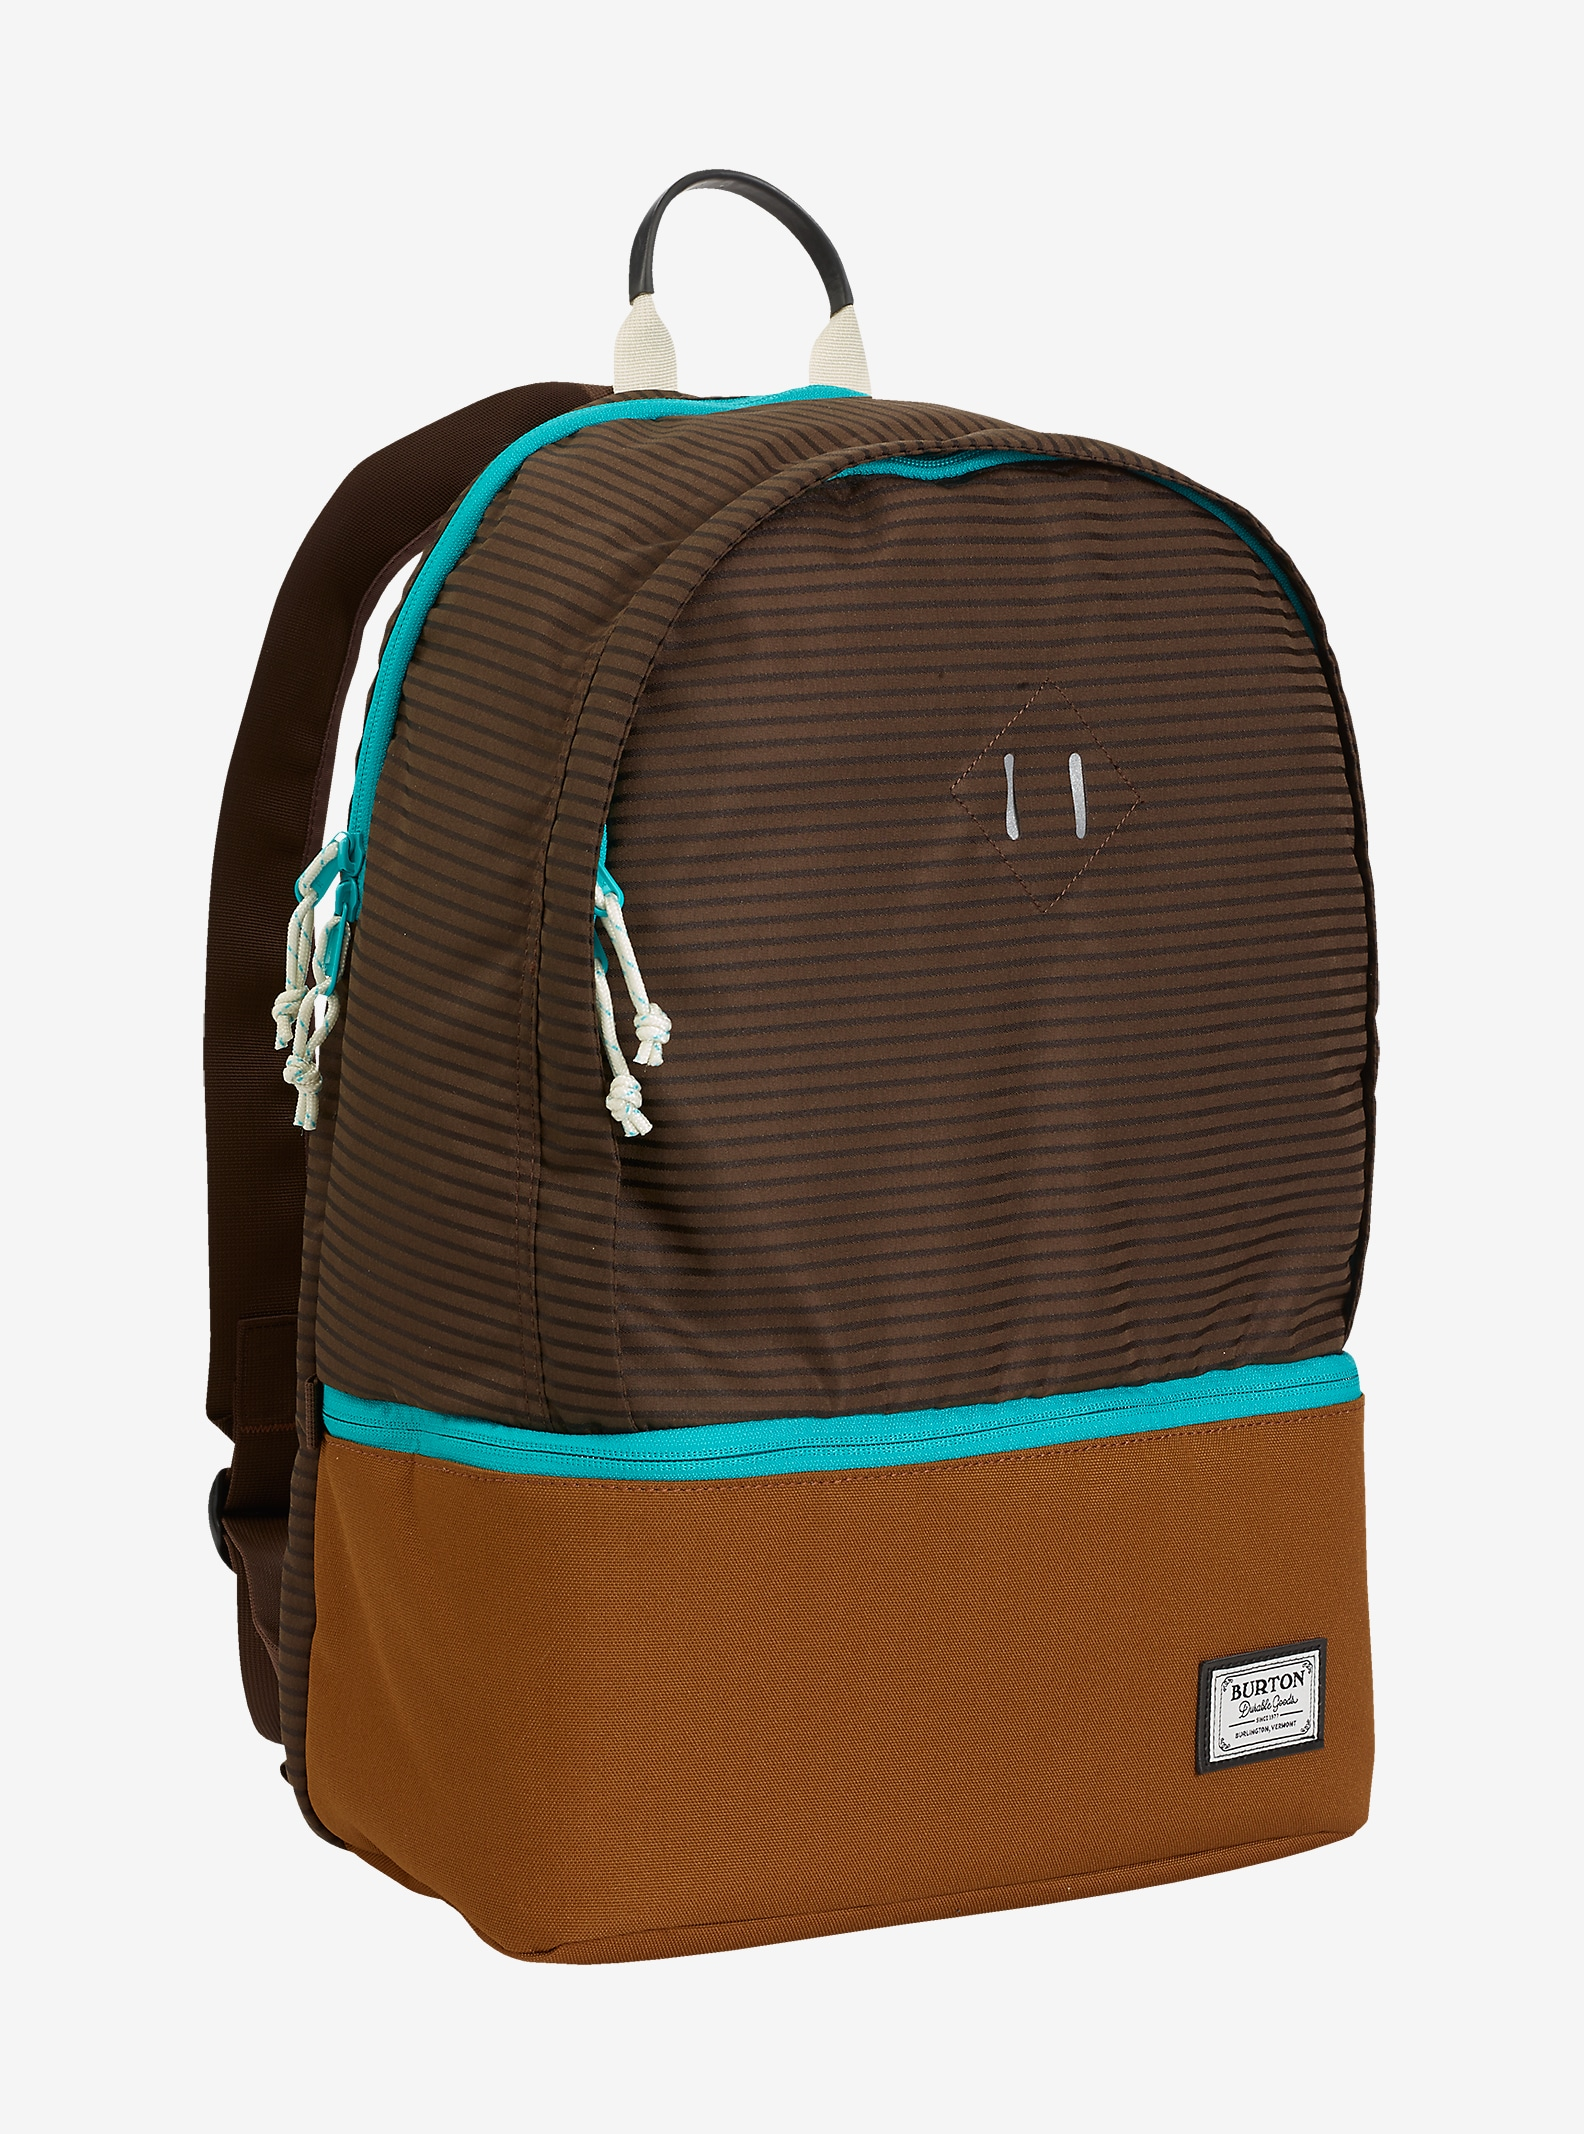 Burton Snake Mountain Backpack shown in Beaver Tail Crinkle [bluesign® Approved]